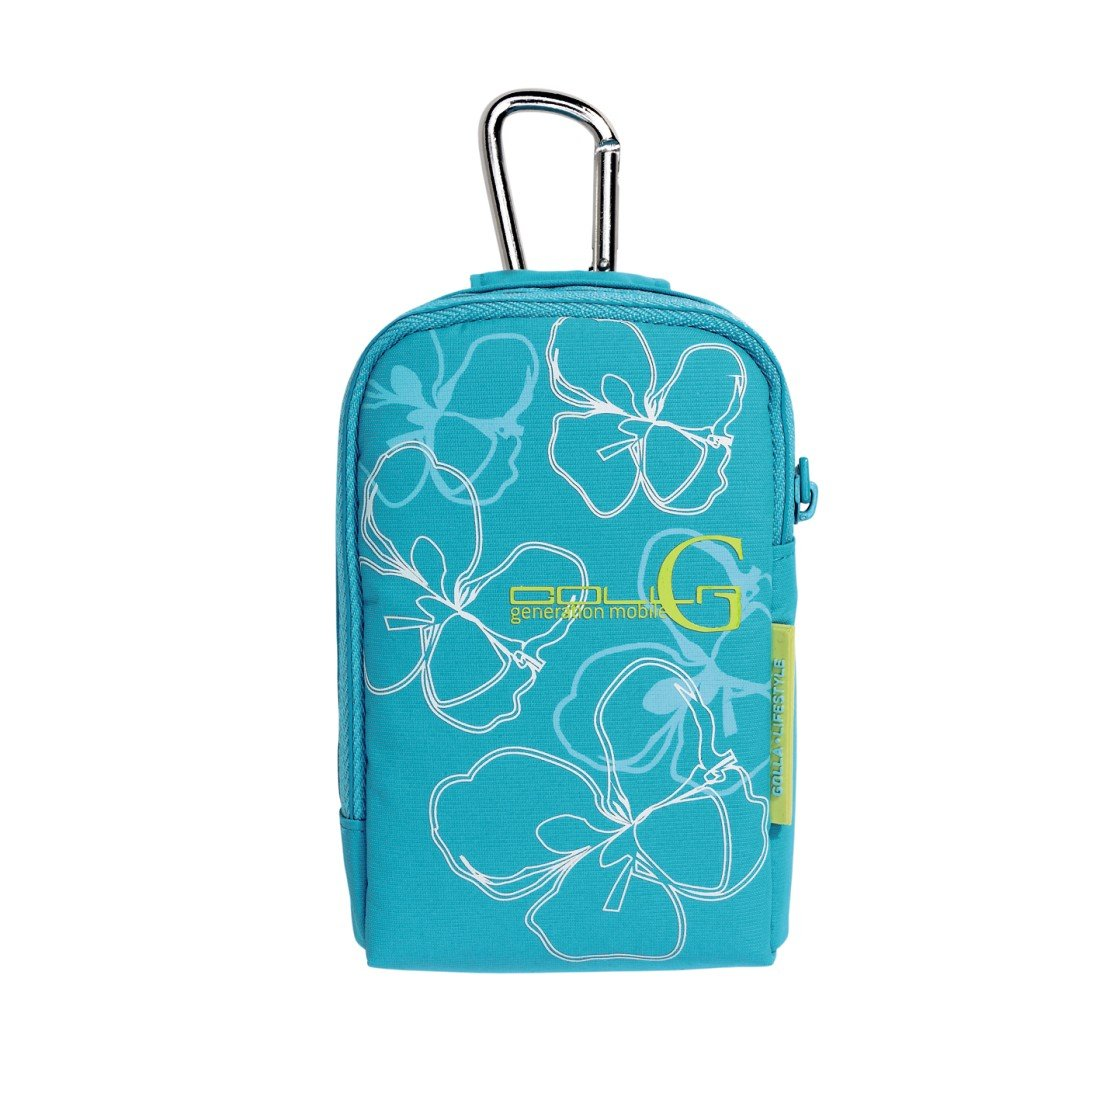 Golla G987 mobile device cases